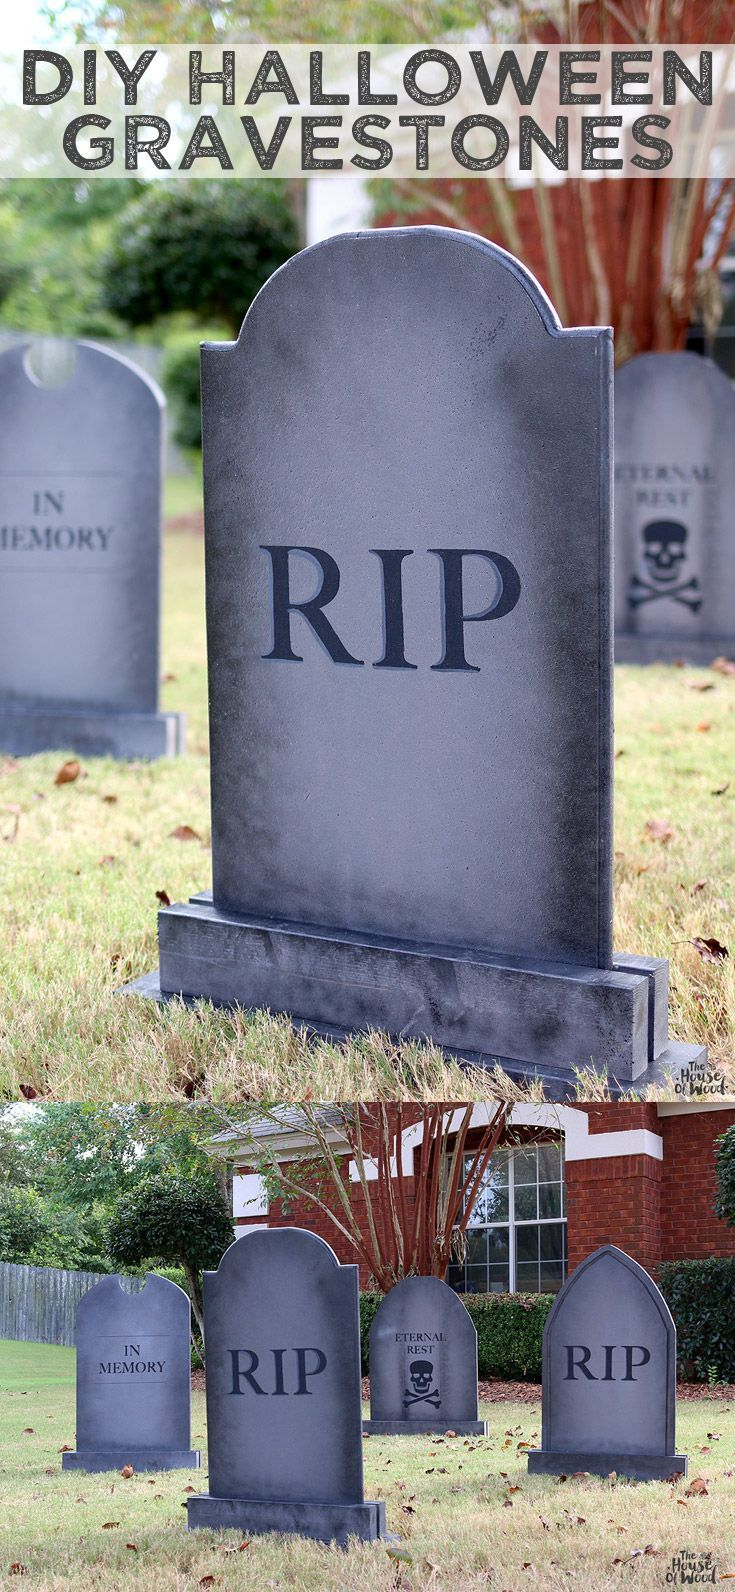 diy halloween lawn gravestones | how-to and diy | pinterest